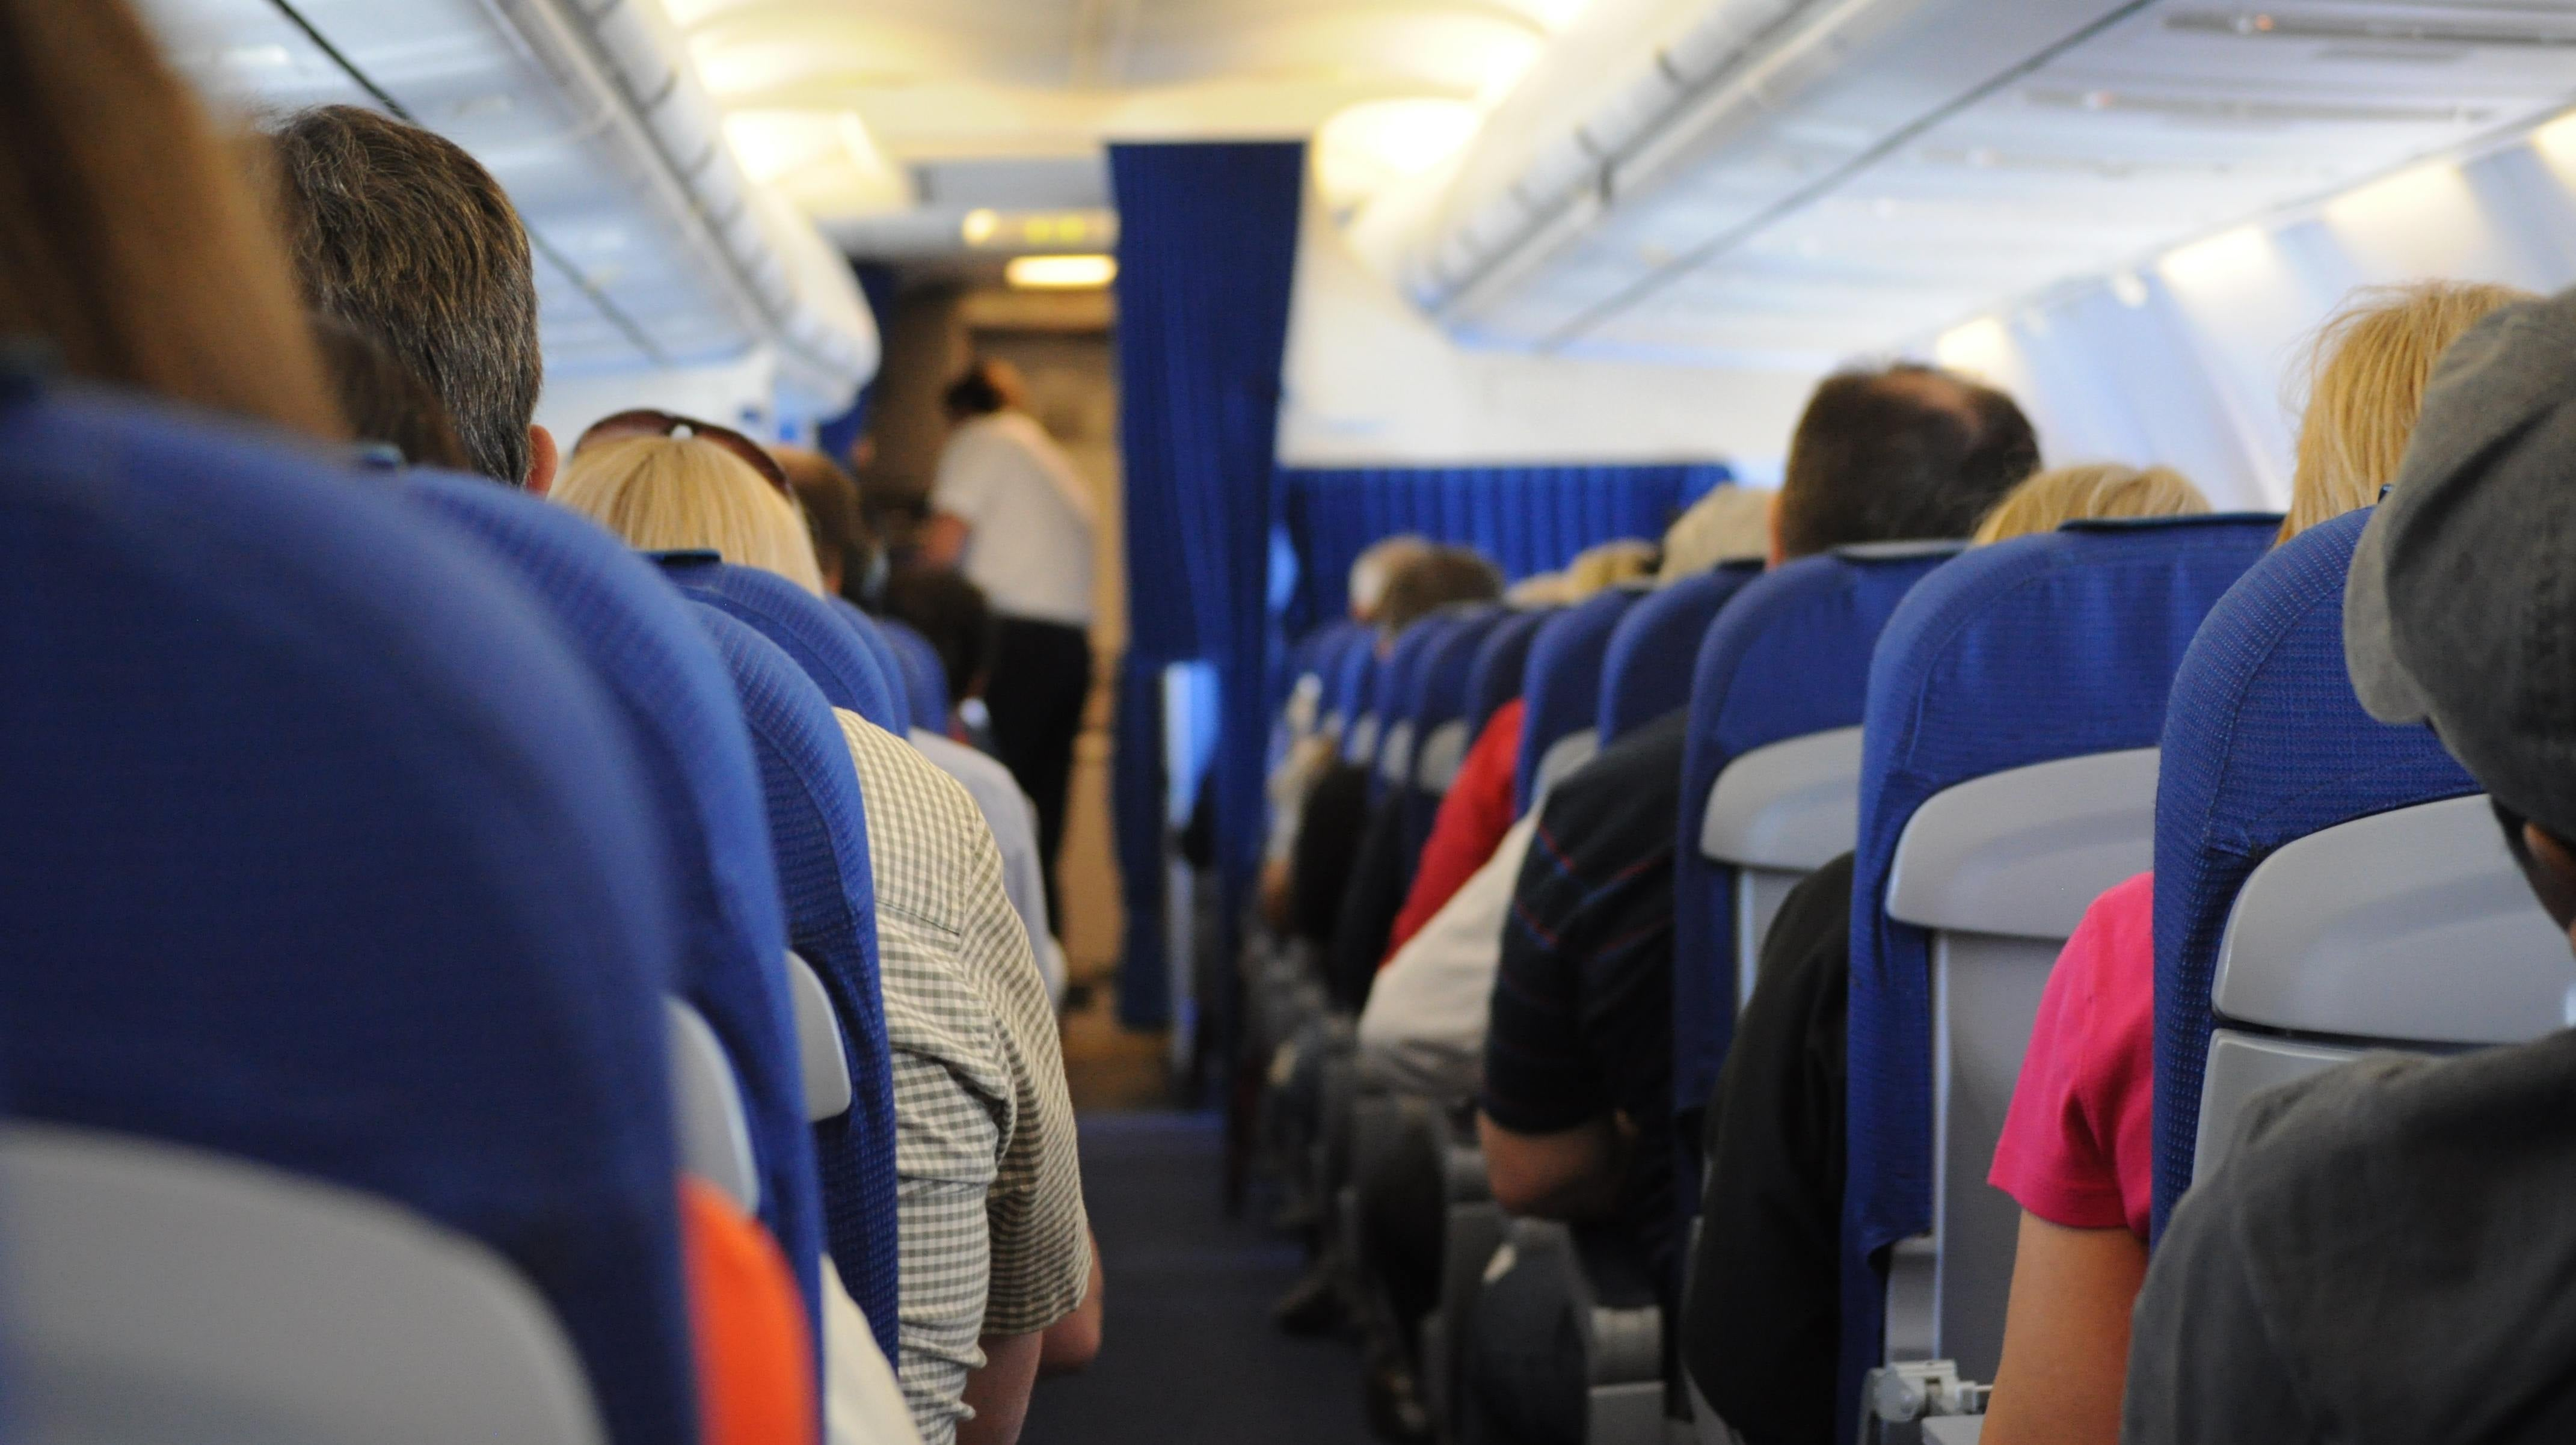 How To Help Prevent Sexual Assaults On Flights